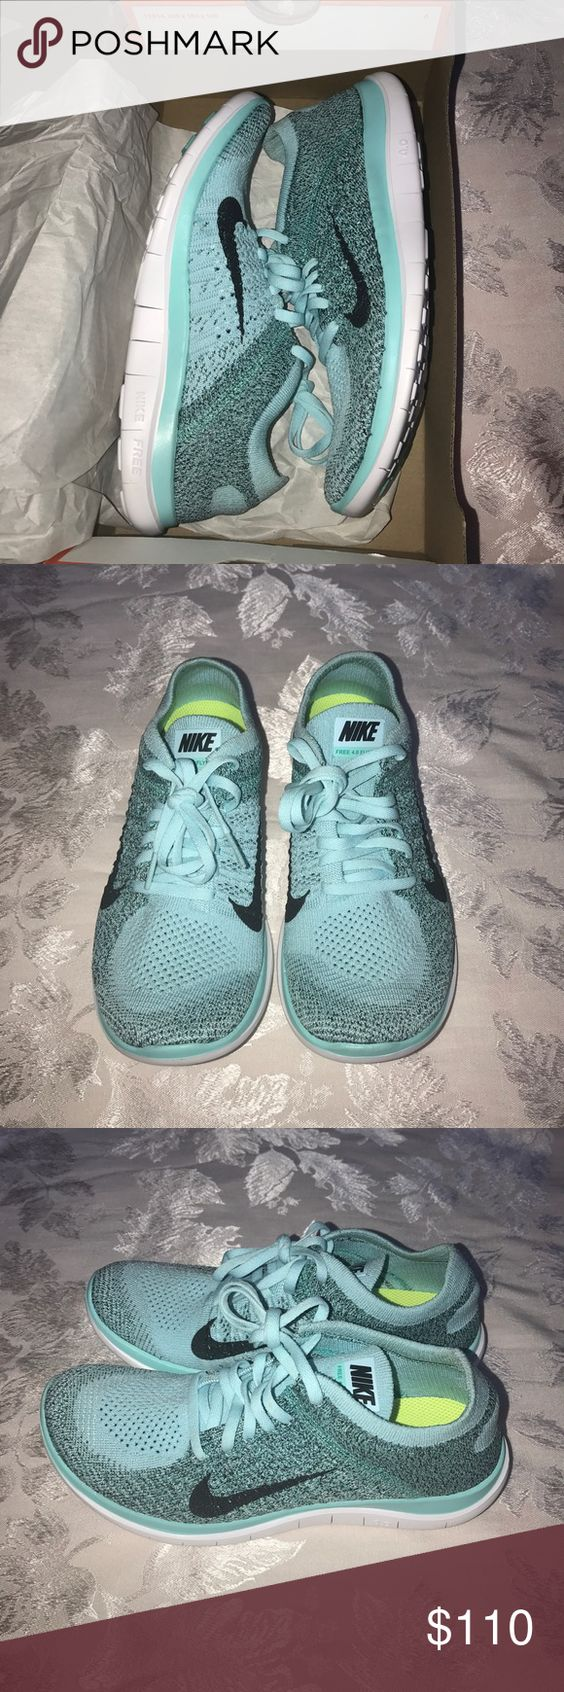 Women's Nike shoes Women's Nike free 4.0 flyknit. New in box, never worn. Size 7 in turquoise Nike Shoes Athletic Shoes